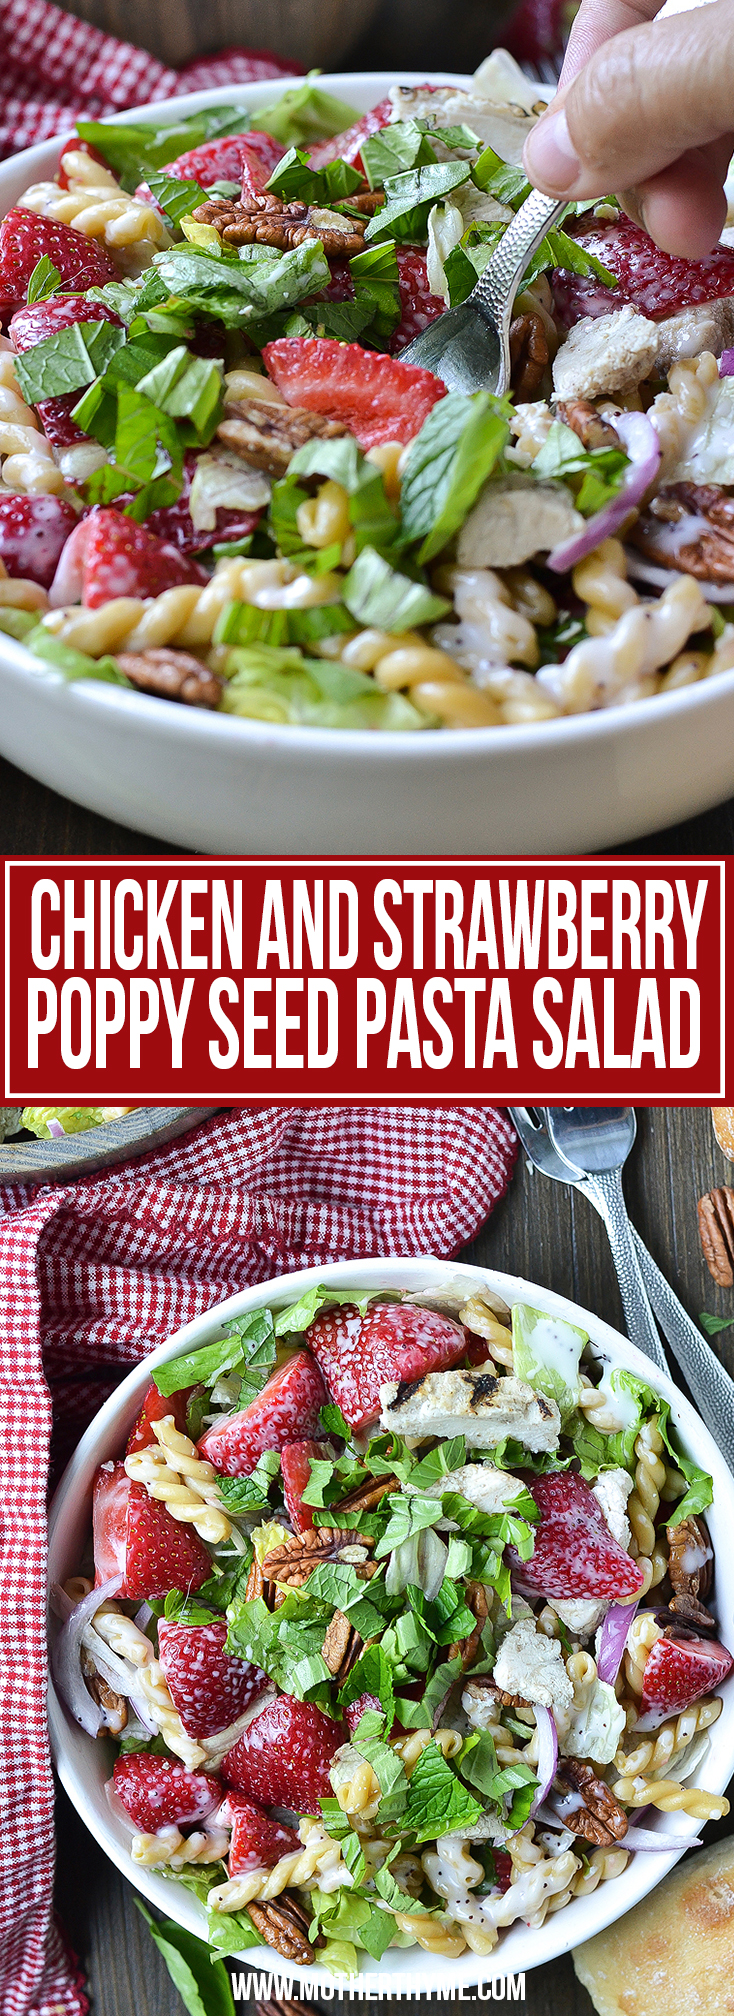 CHICKEN AND STRAWBERRY POPPY SEED PASTA SALAD